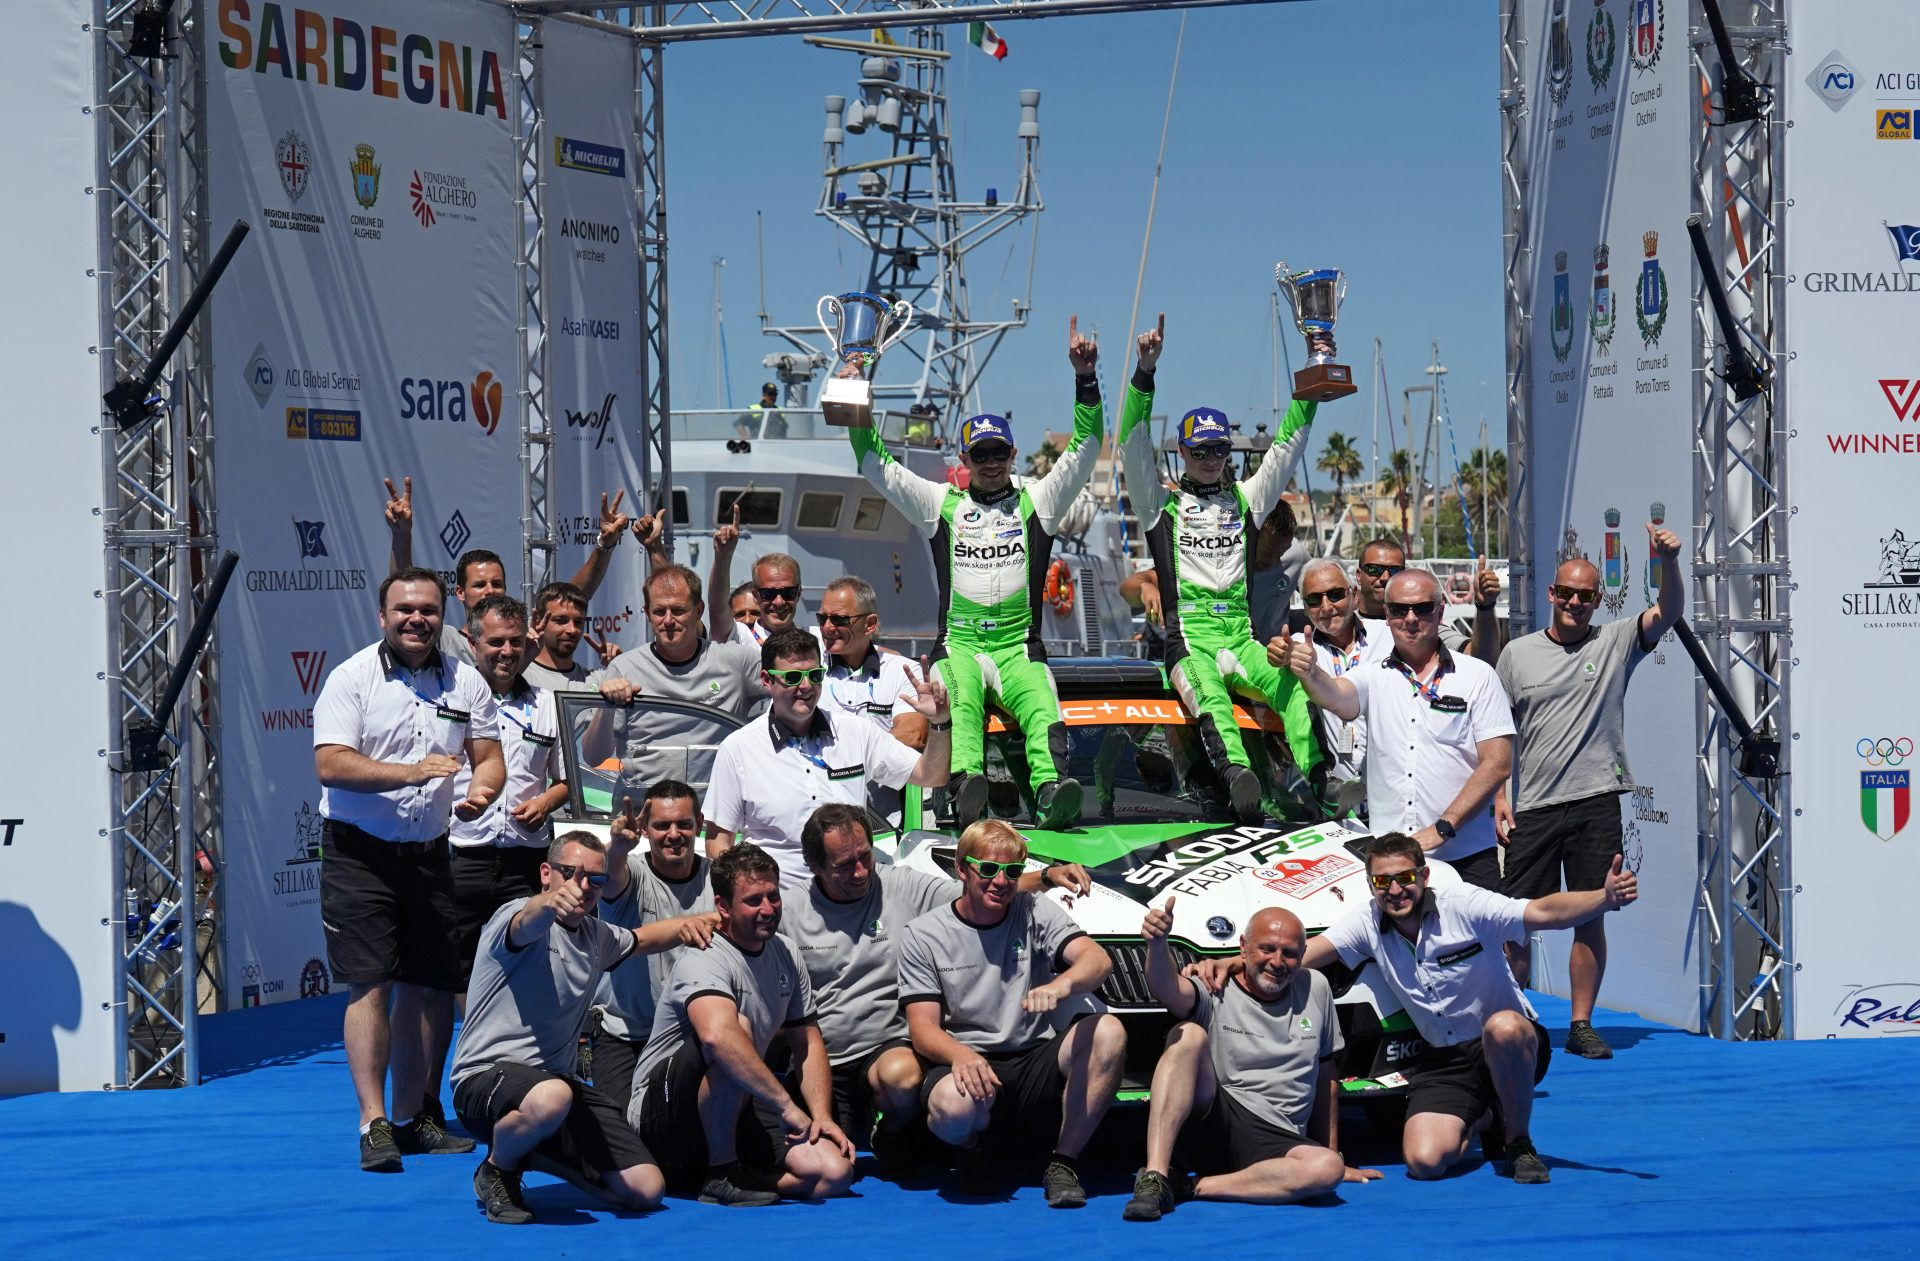 Rally Italia Sardegna: Current News and Results